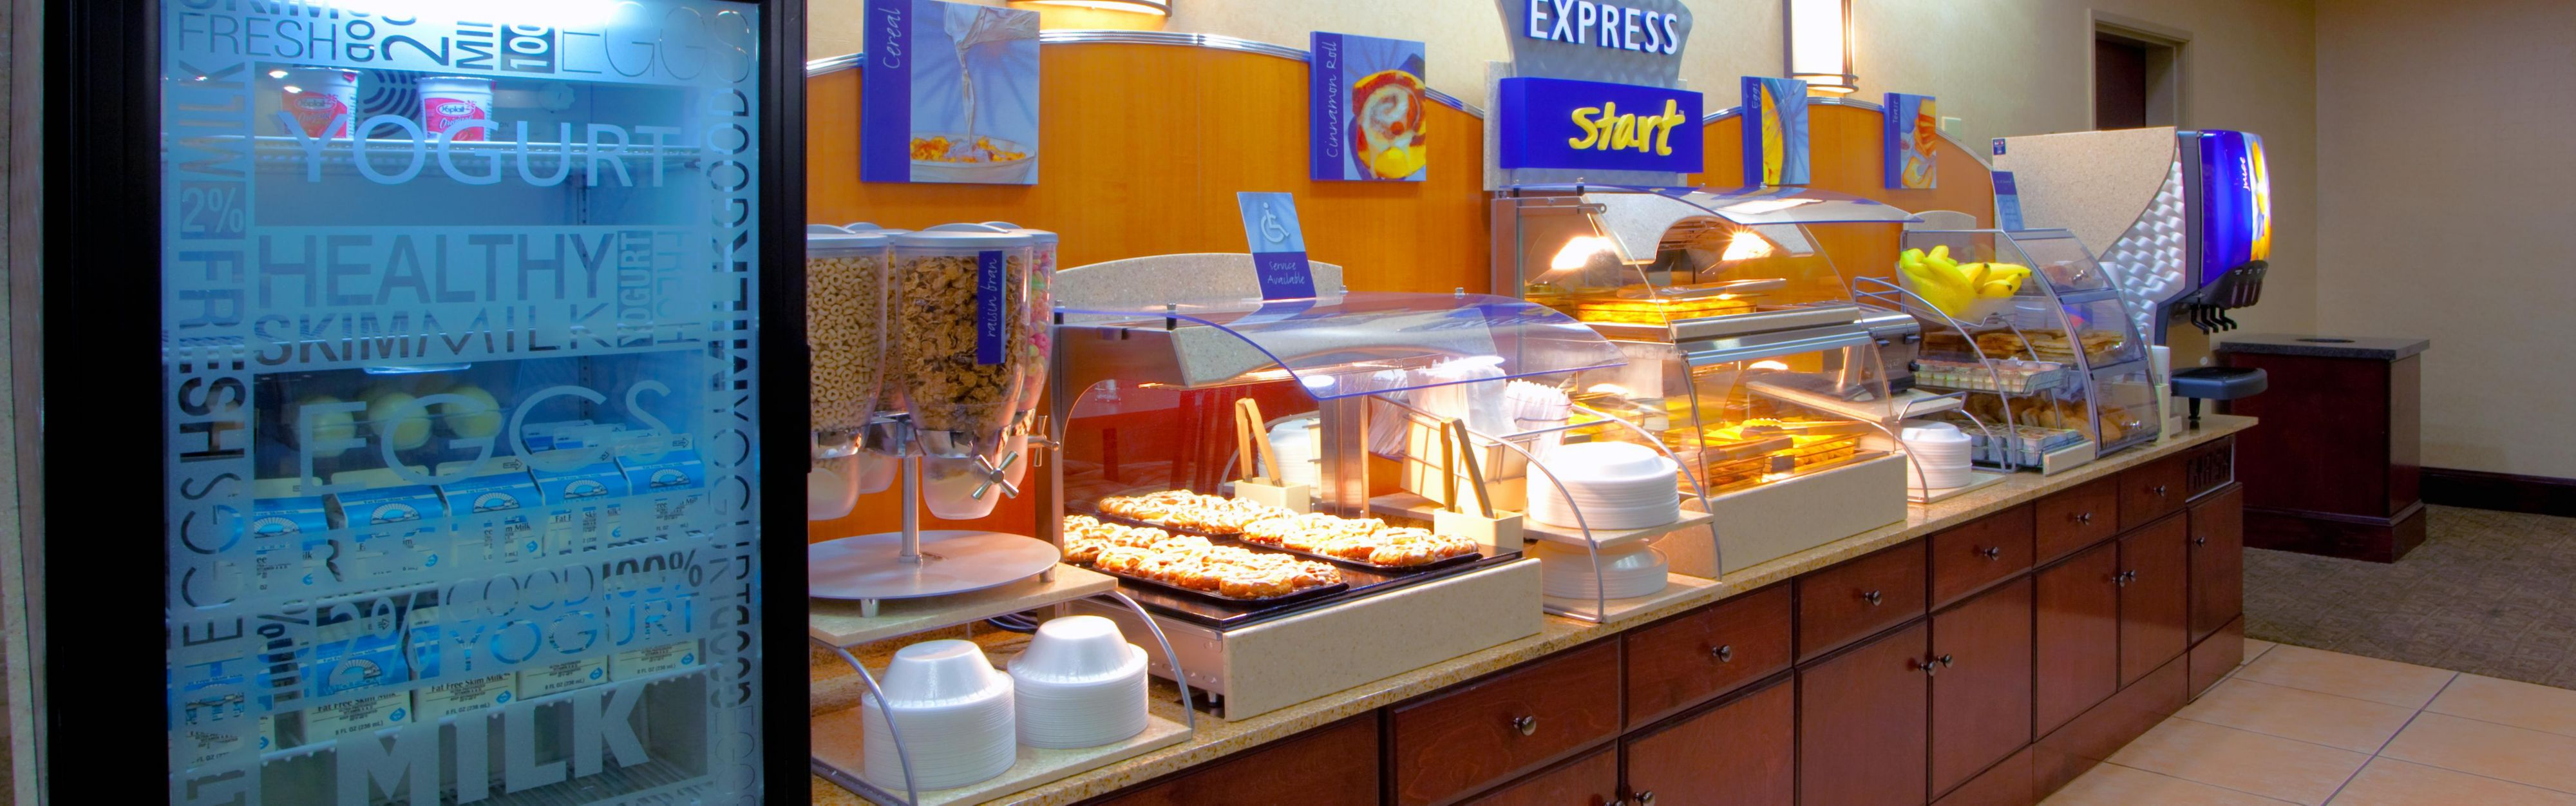 Holiday Inn Express & Suites Tappahannock image 3